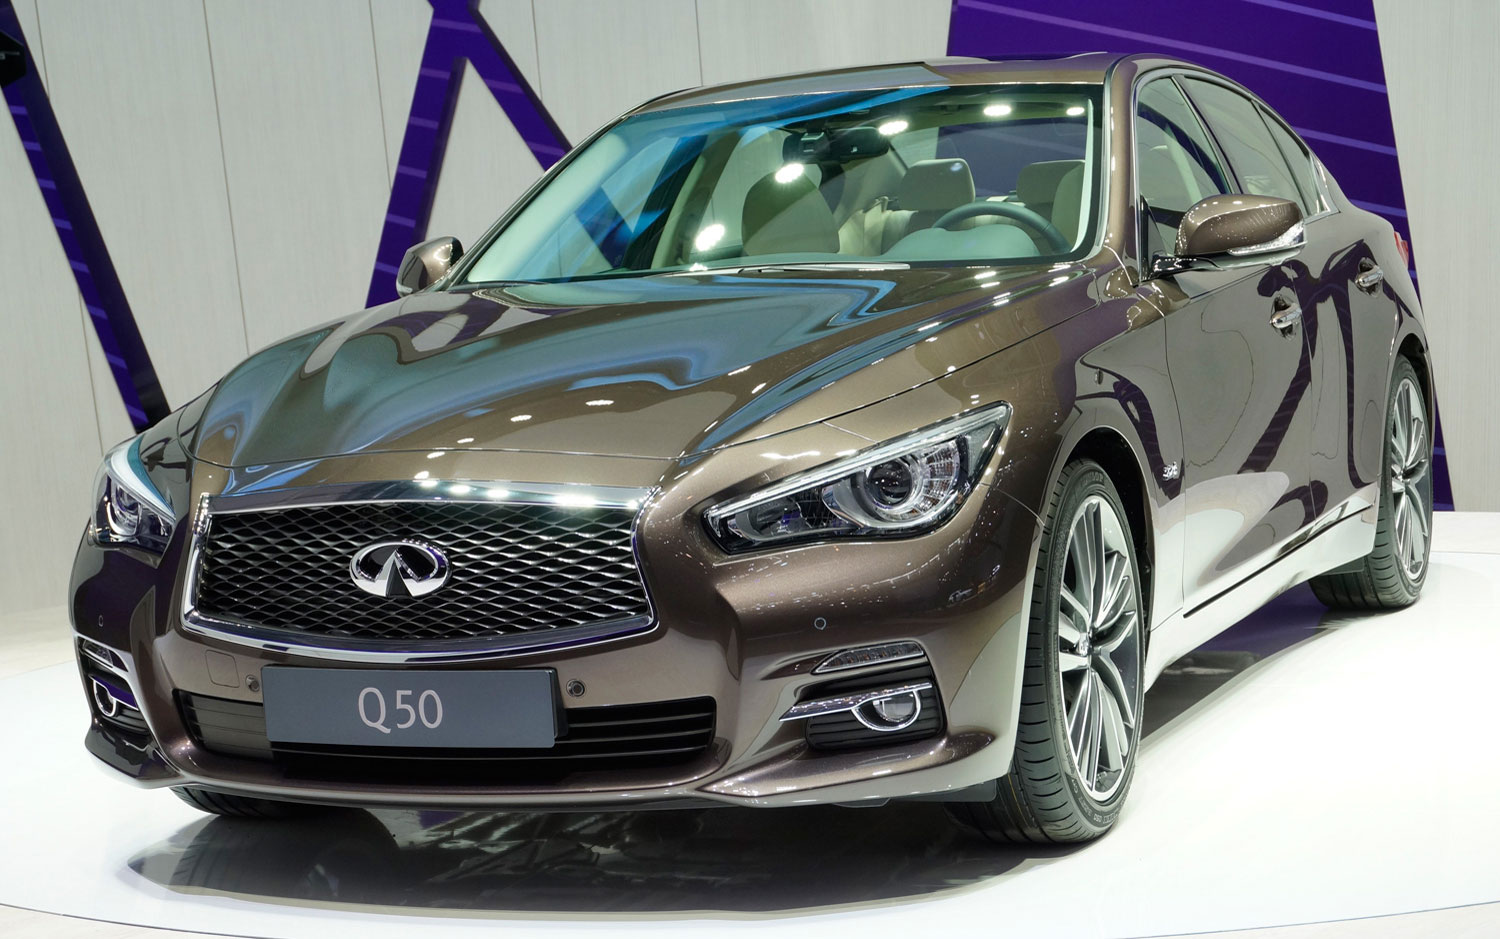 cars model 2013 2014 2014 infiniti q50 debuts in geneva with diesel manual transmission model. Black Bedroom Furniture Sets. Home Design Ideas